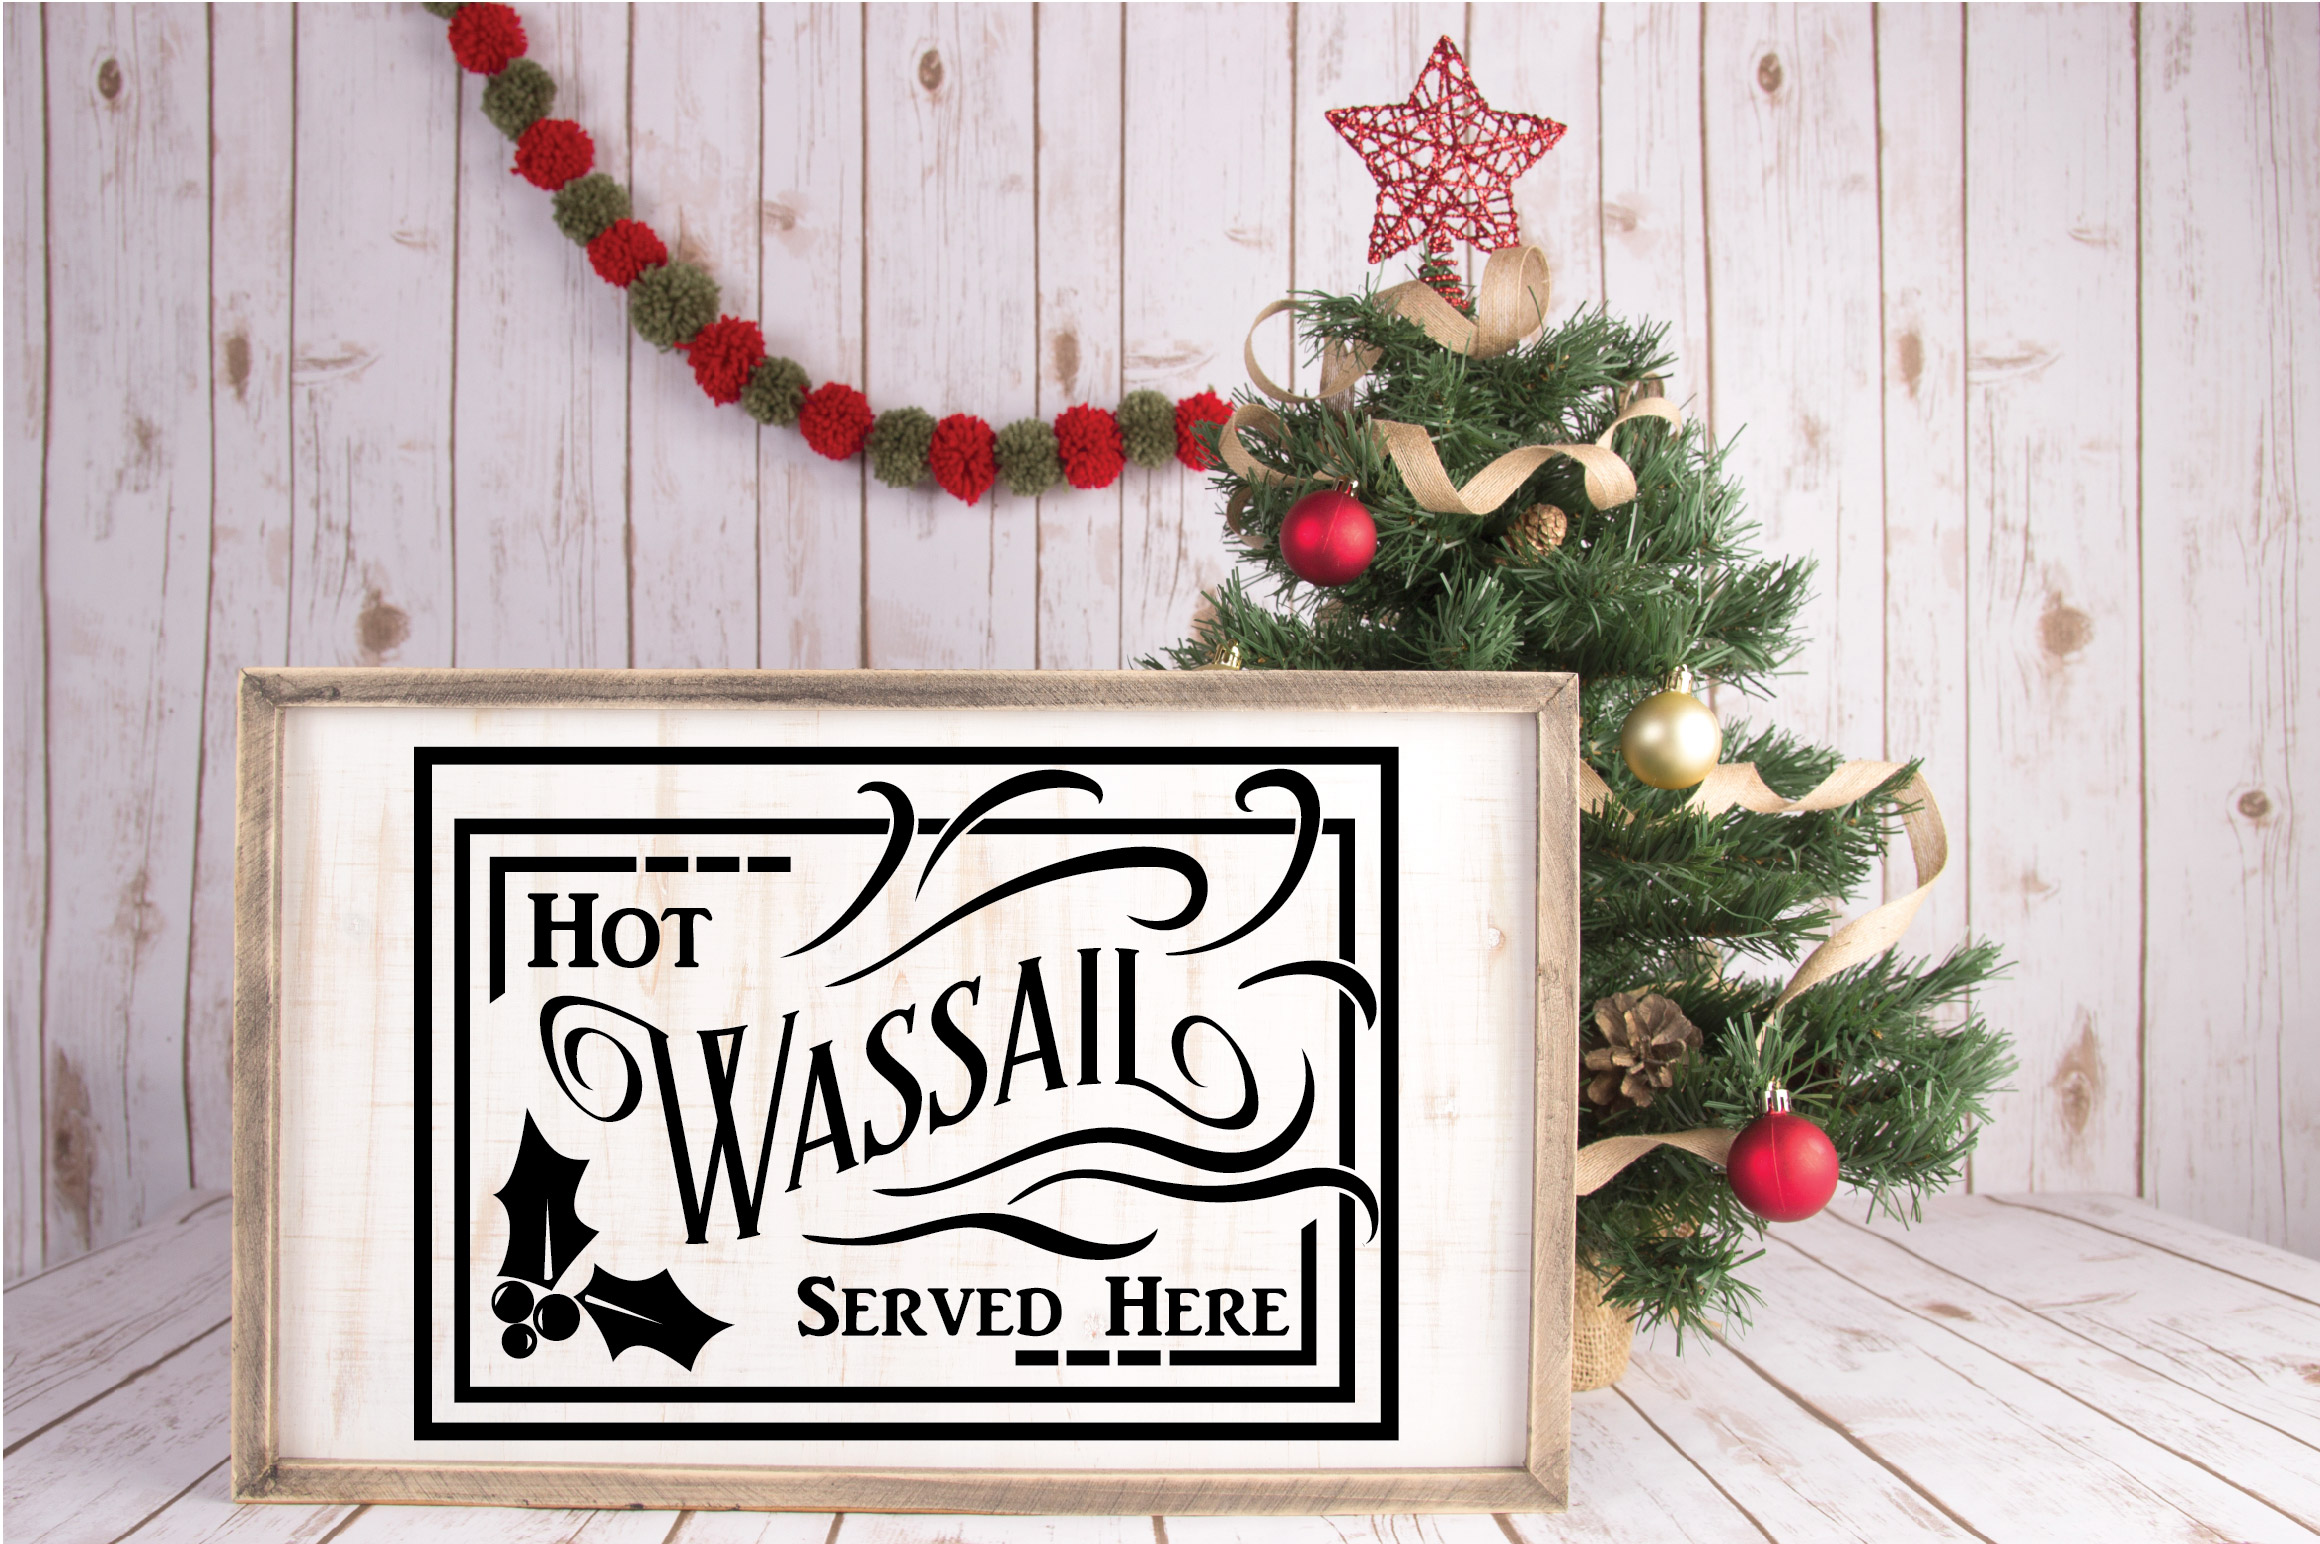 Christmas SVG Cut File - Hot Wassail SVG DXF PNG EPS JPG example image 5